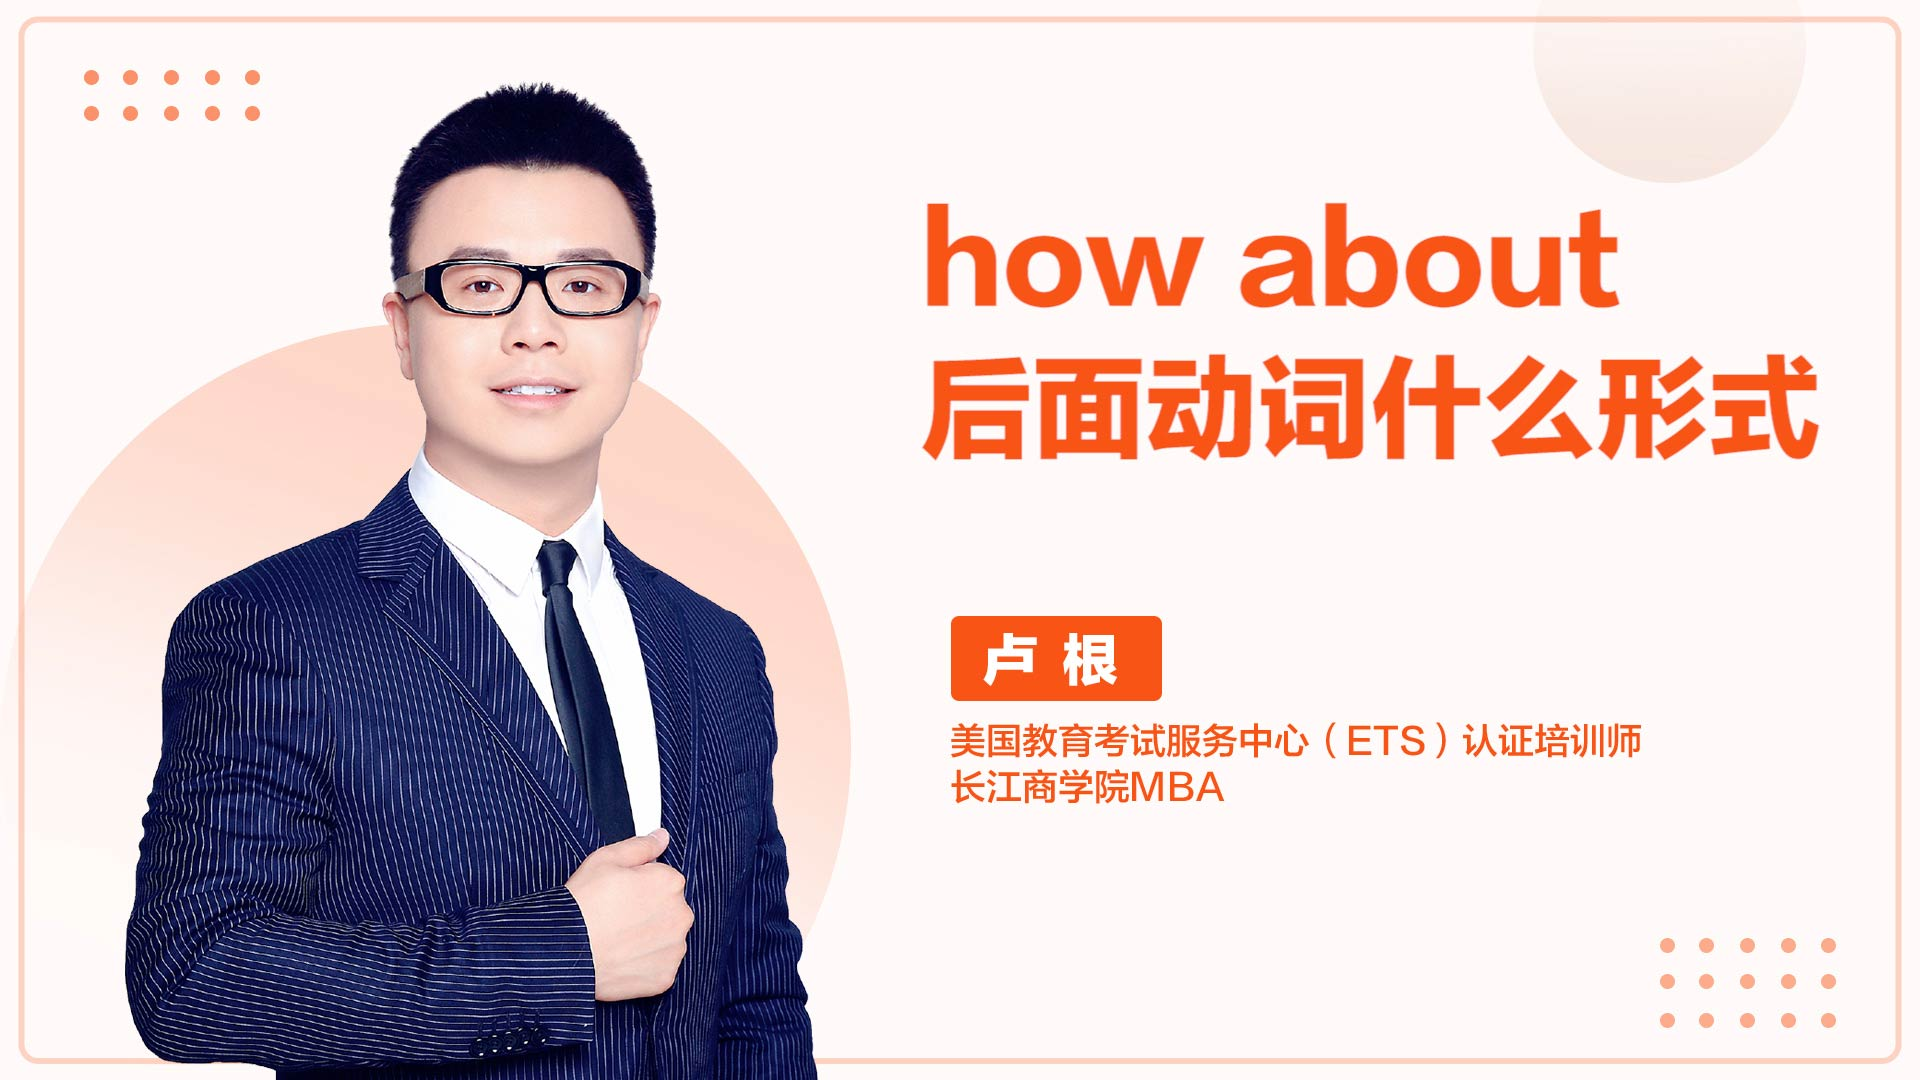 how about后面动词什么形式